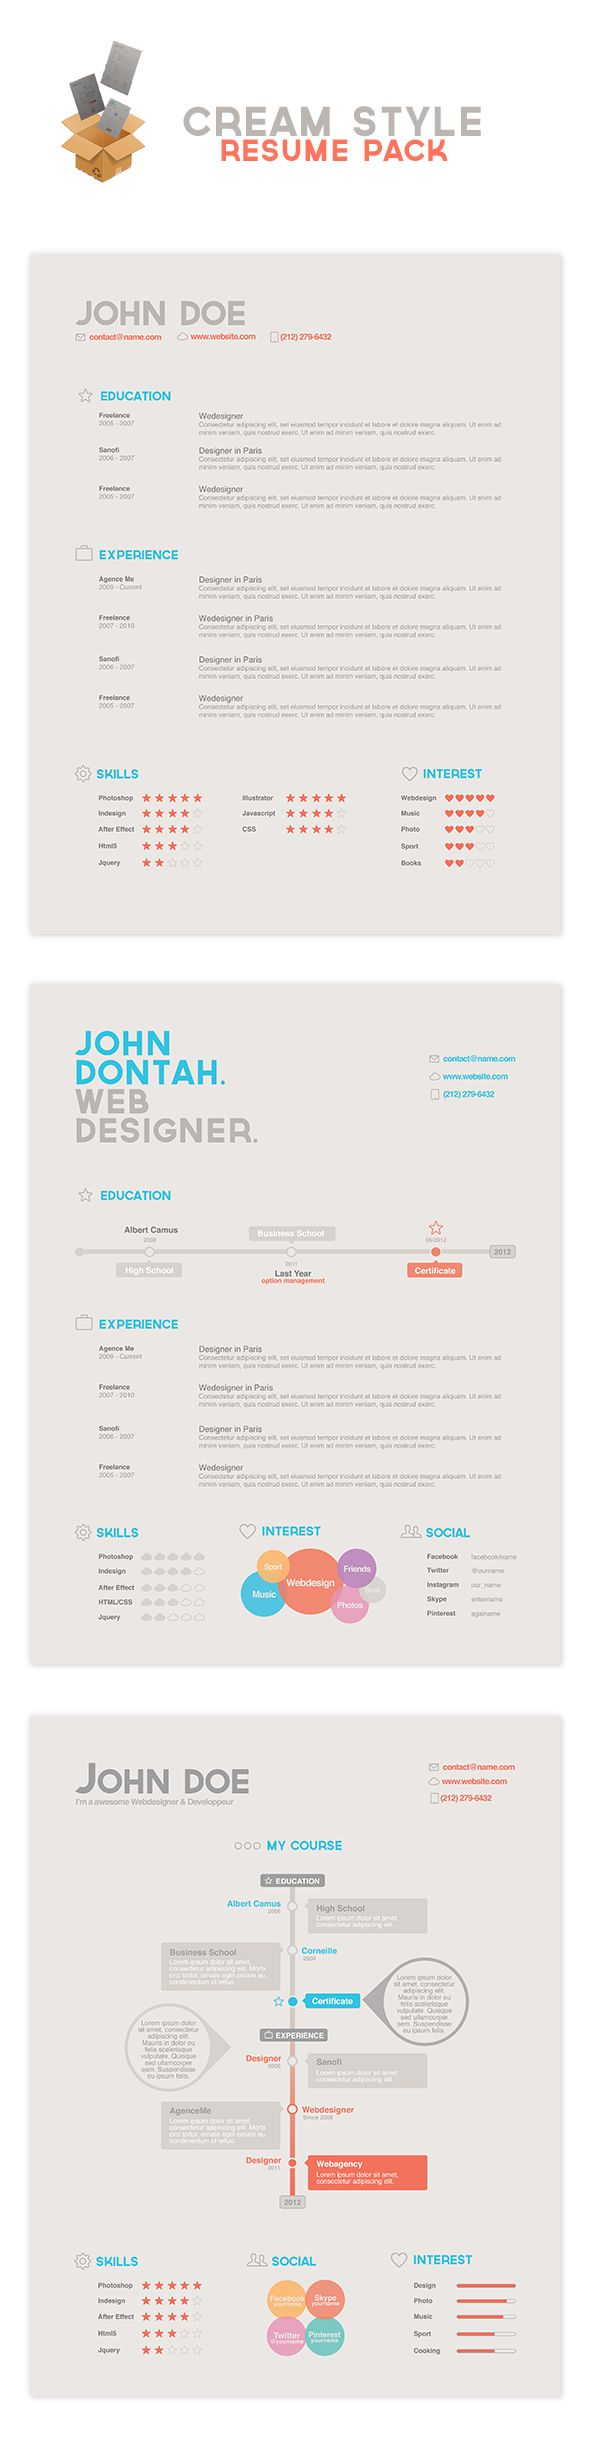 Resume Headers Endearing 103 Best Resume Design Images On Pinterest  Resume Design Resume .